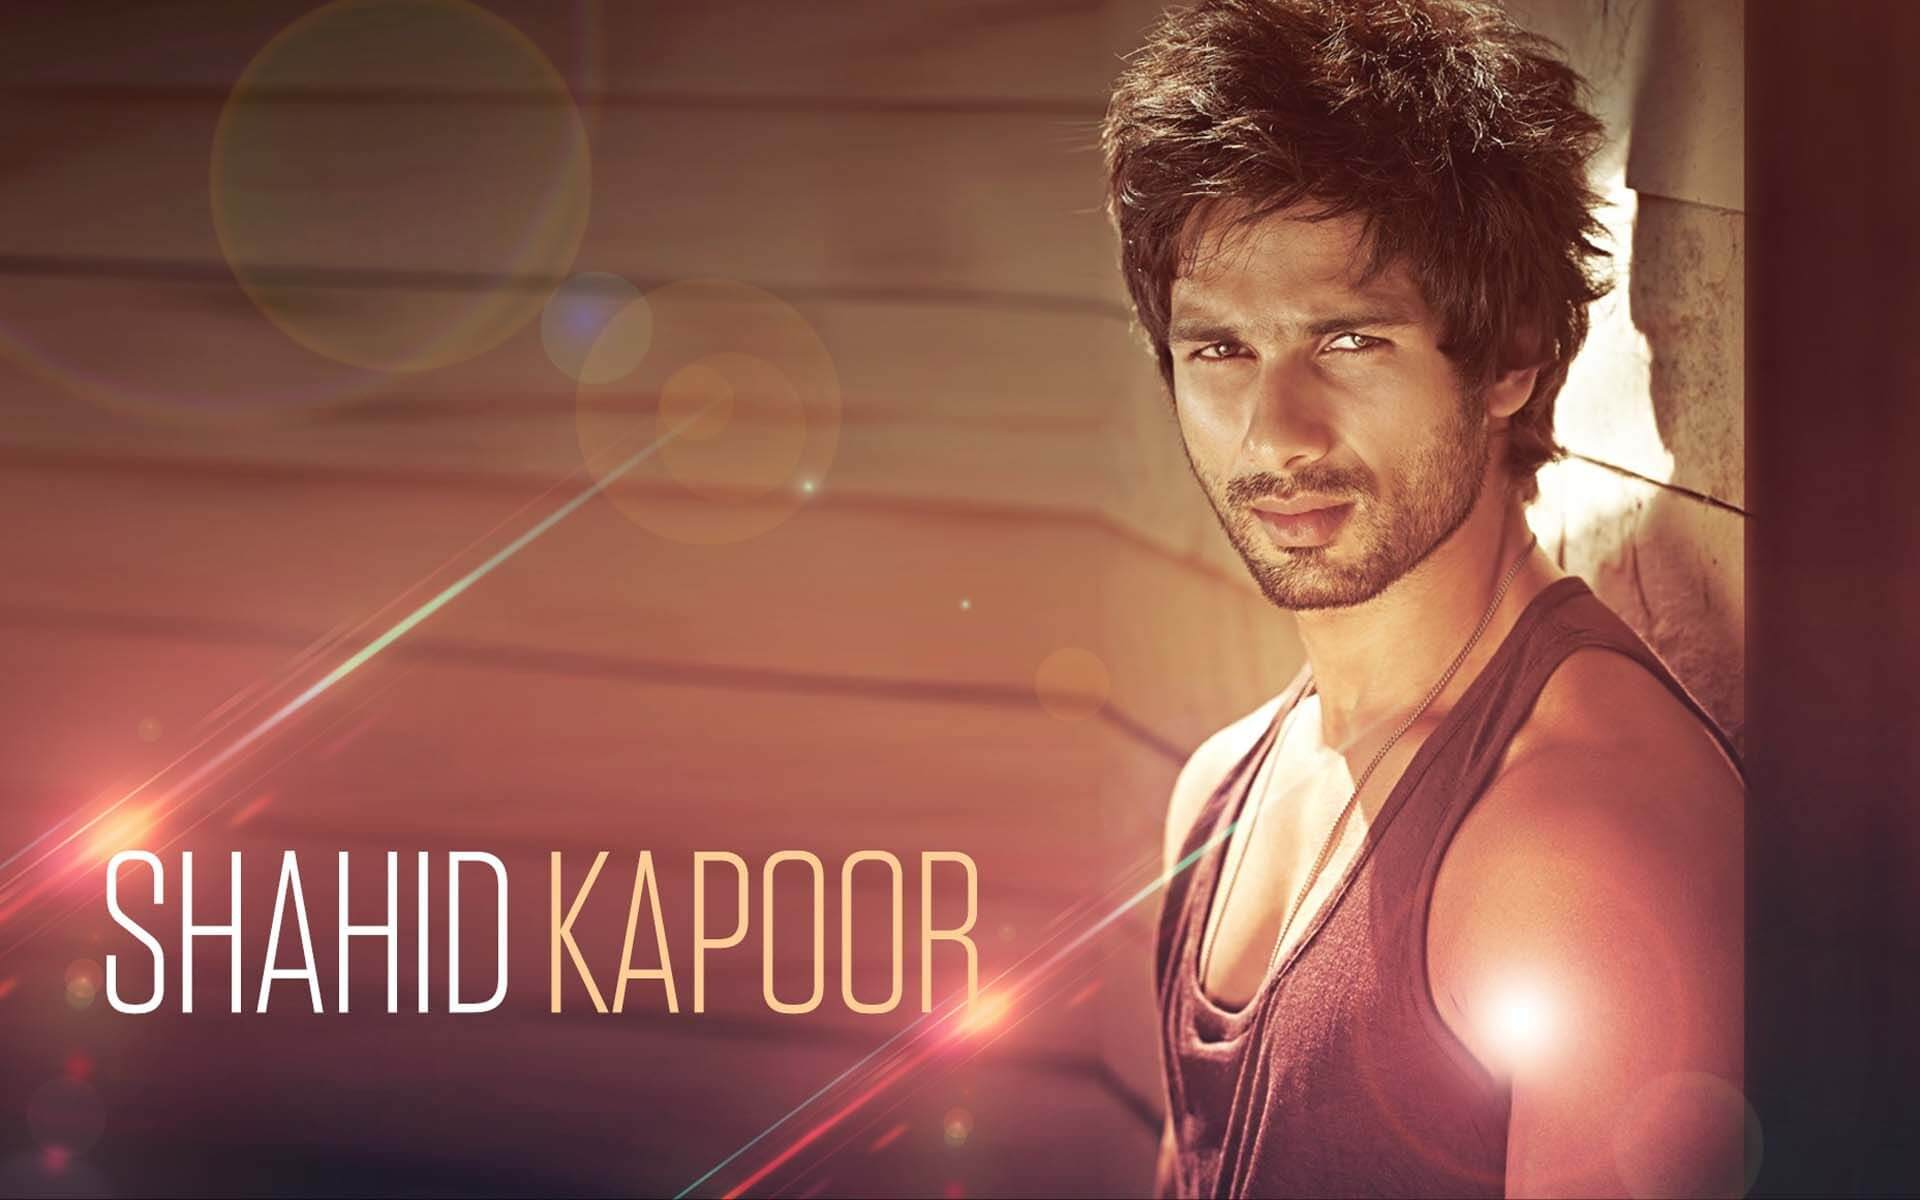 Shahid Kapoor Age, Wife, Height, Movie, Hairstyle, Family, Images(photos), Net Worth, Brother, Education, Biography, Date Of Birth, Awards, Twitter, Instagram, Wiki, Facebook, Imdb, Website (13)